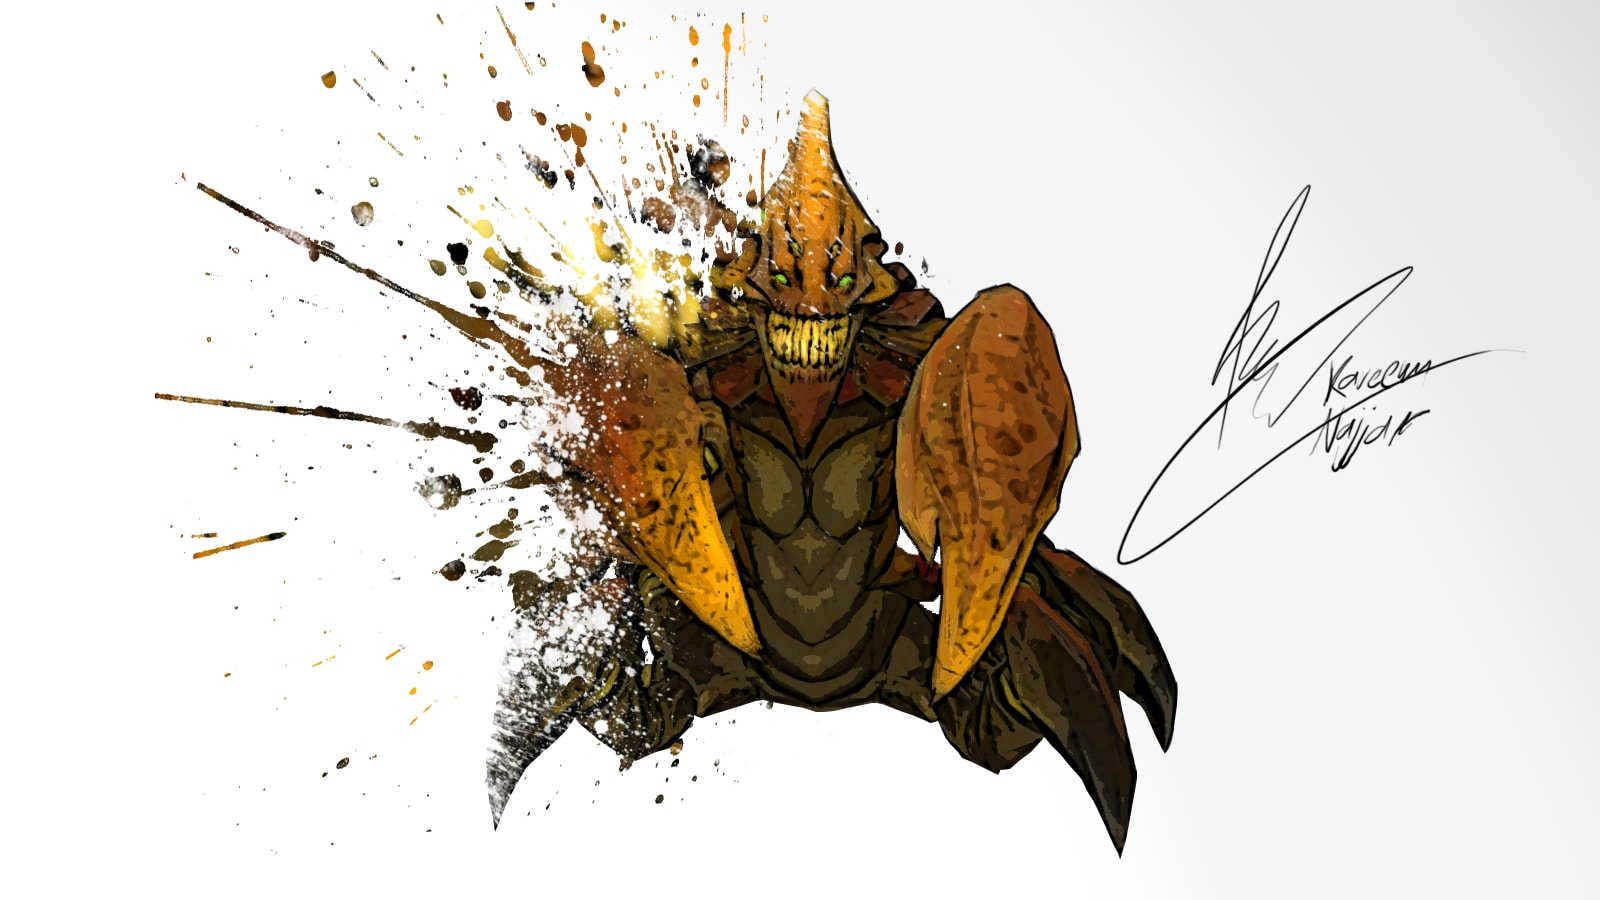 Dota2 : Sand King full hd wallpapers